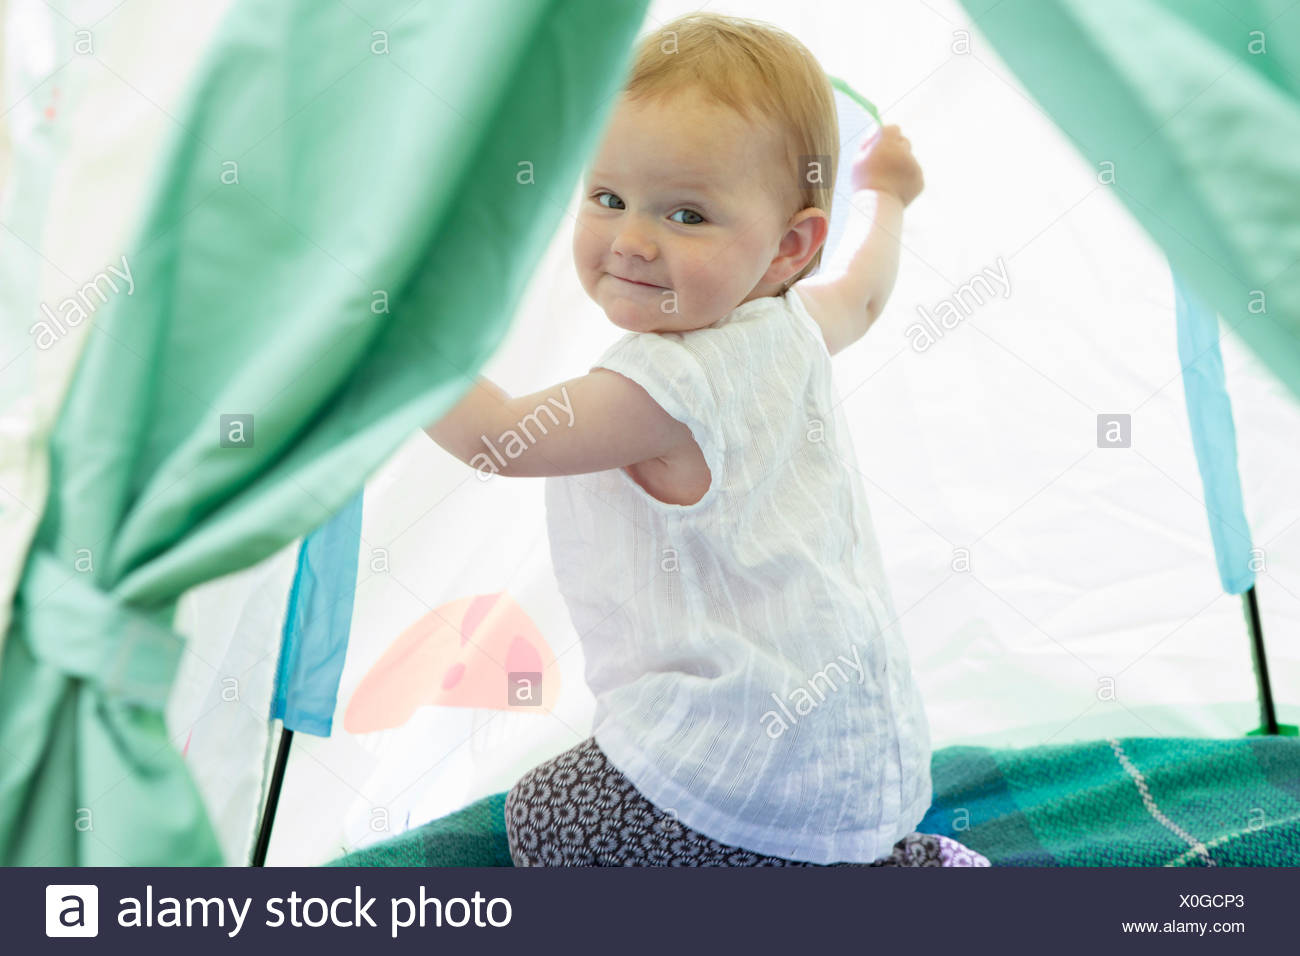 Baby girl playing in tent - Stock Image